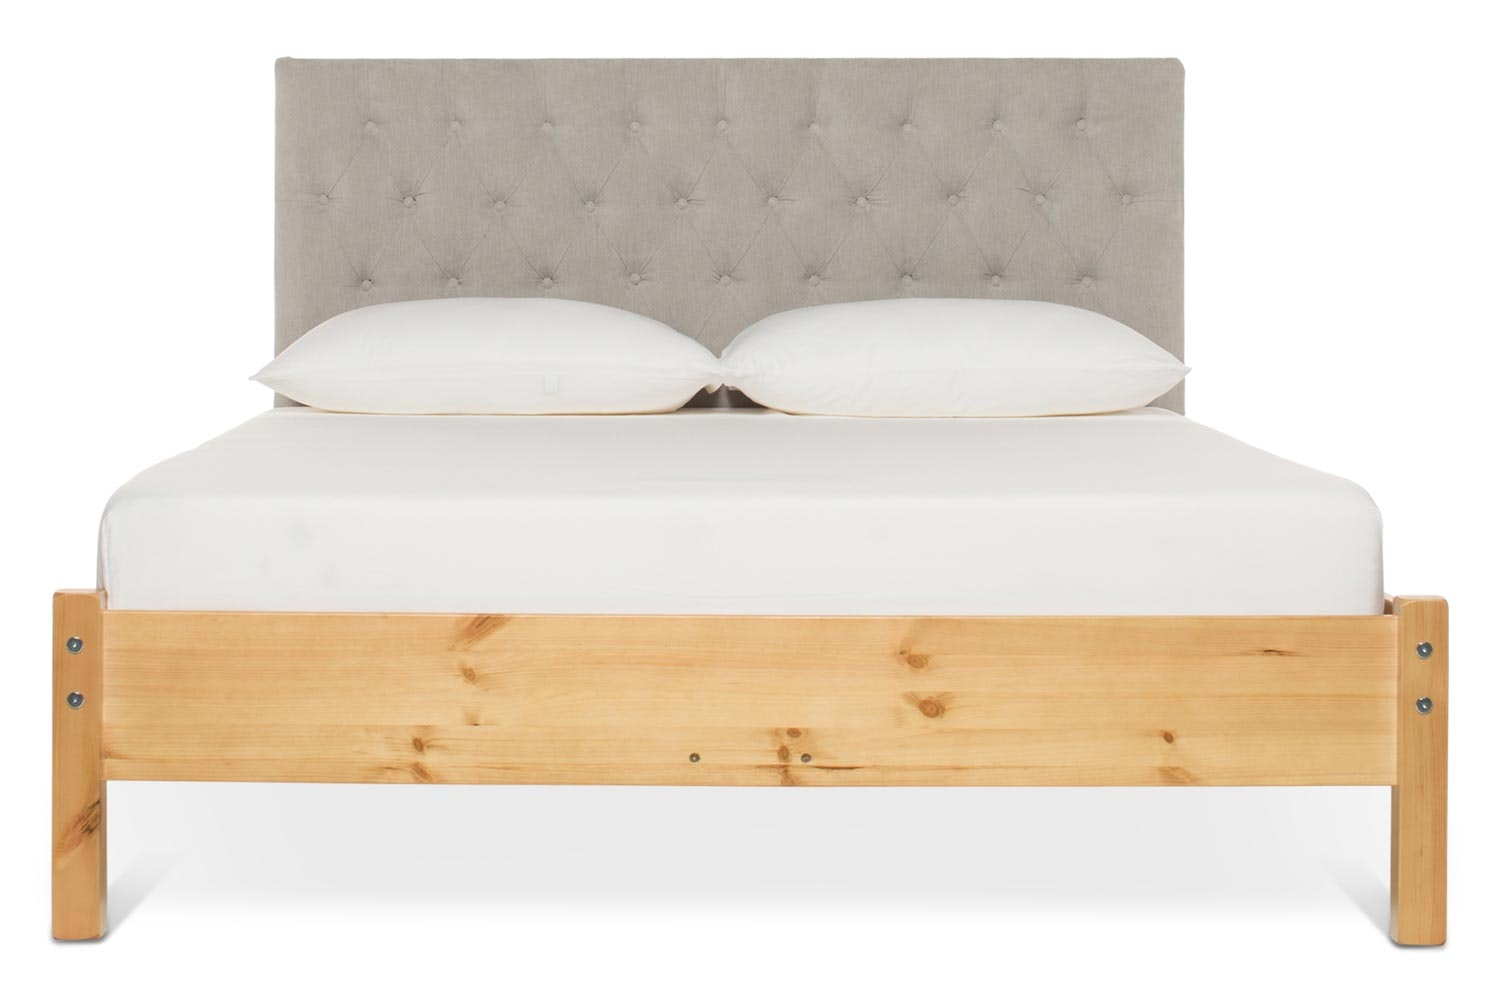 Emily Loft Natural Bed Frame | 4FT6 | Marley Headboard Silver